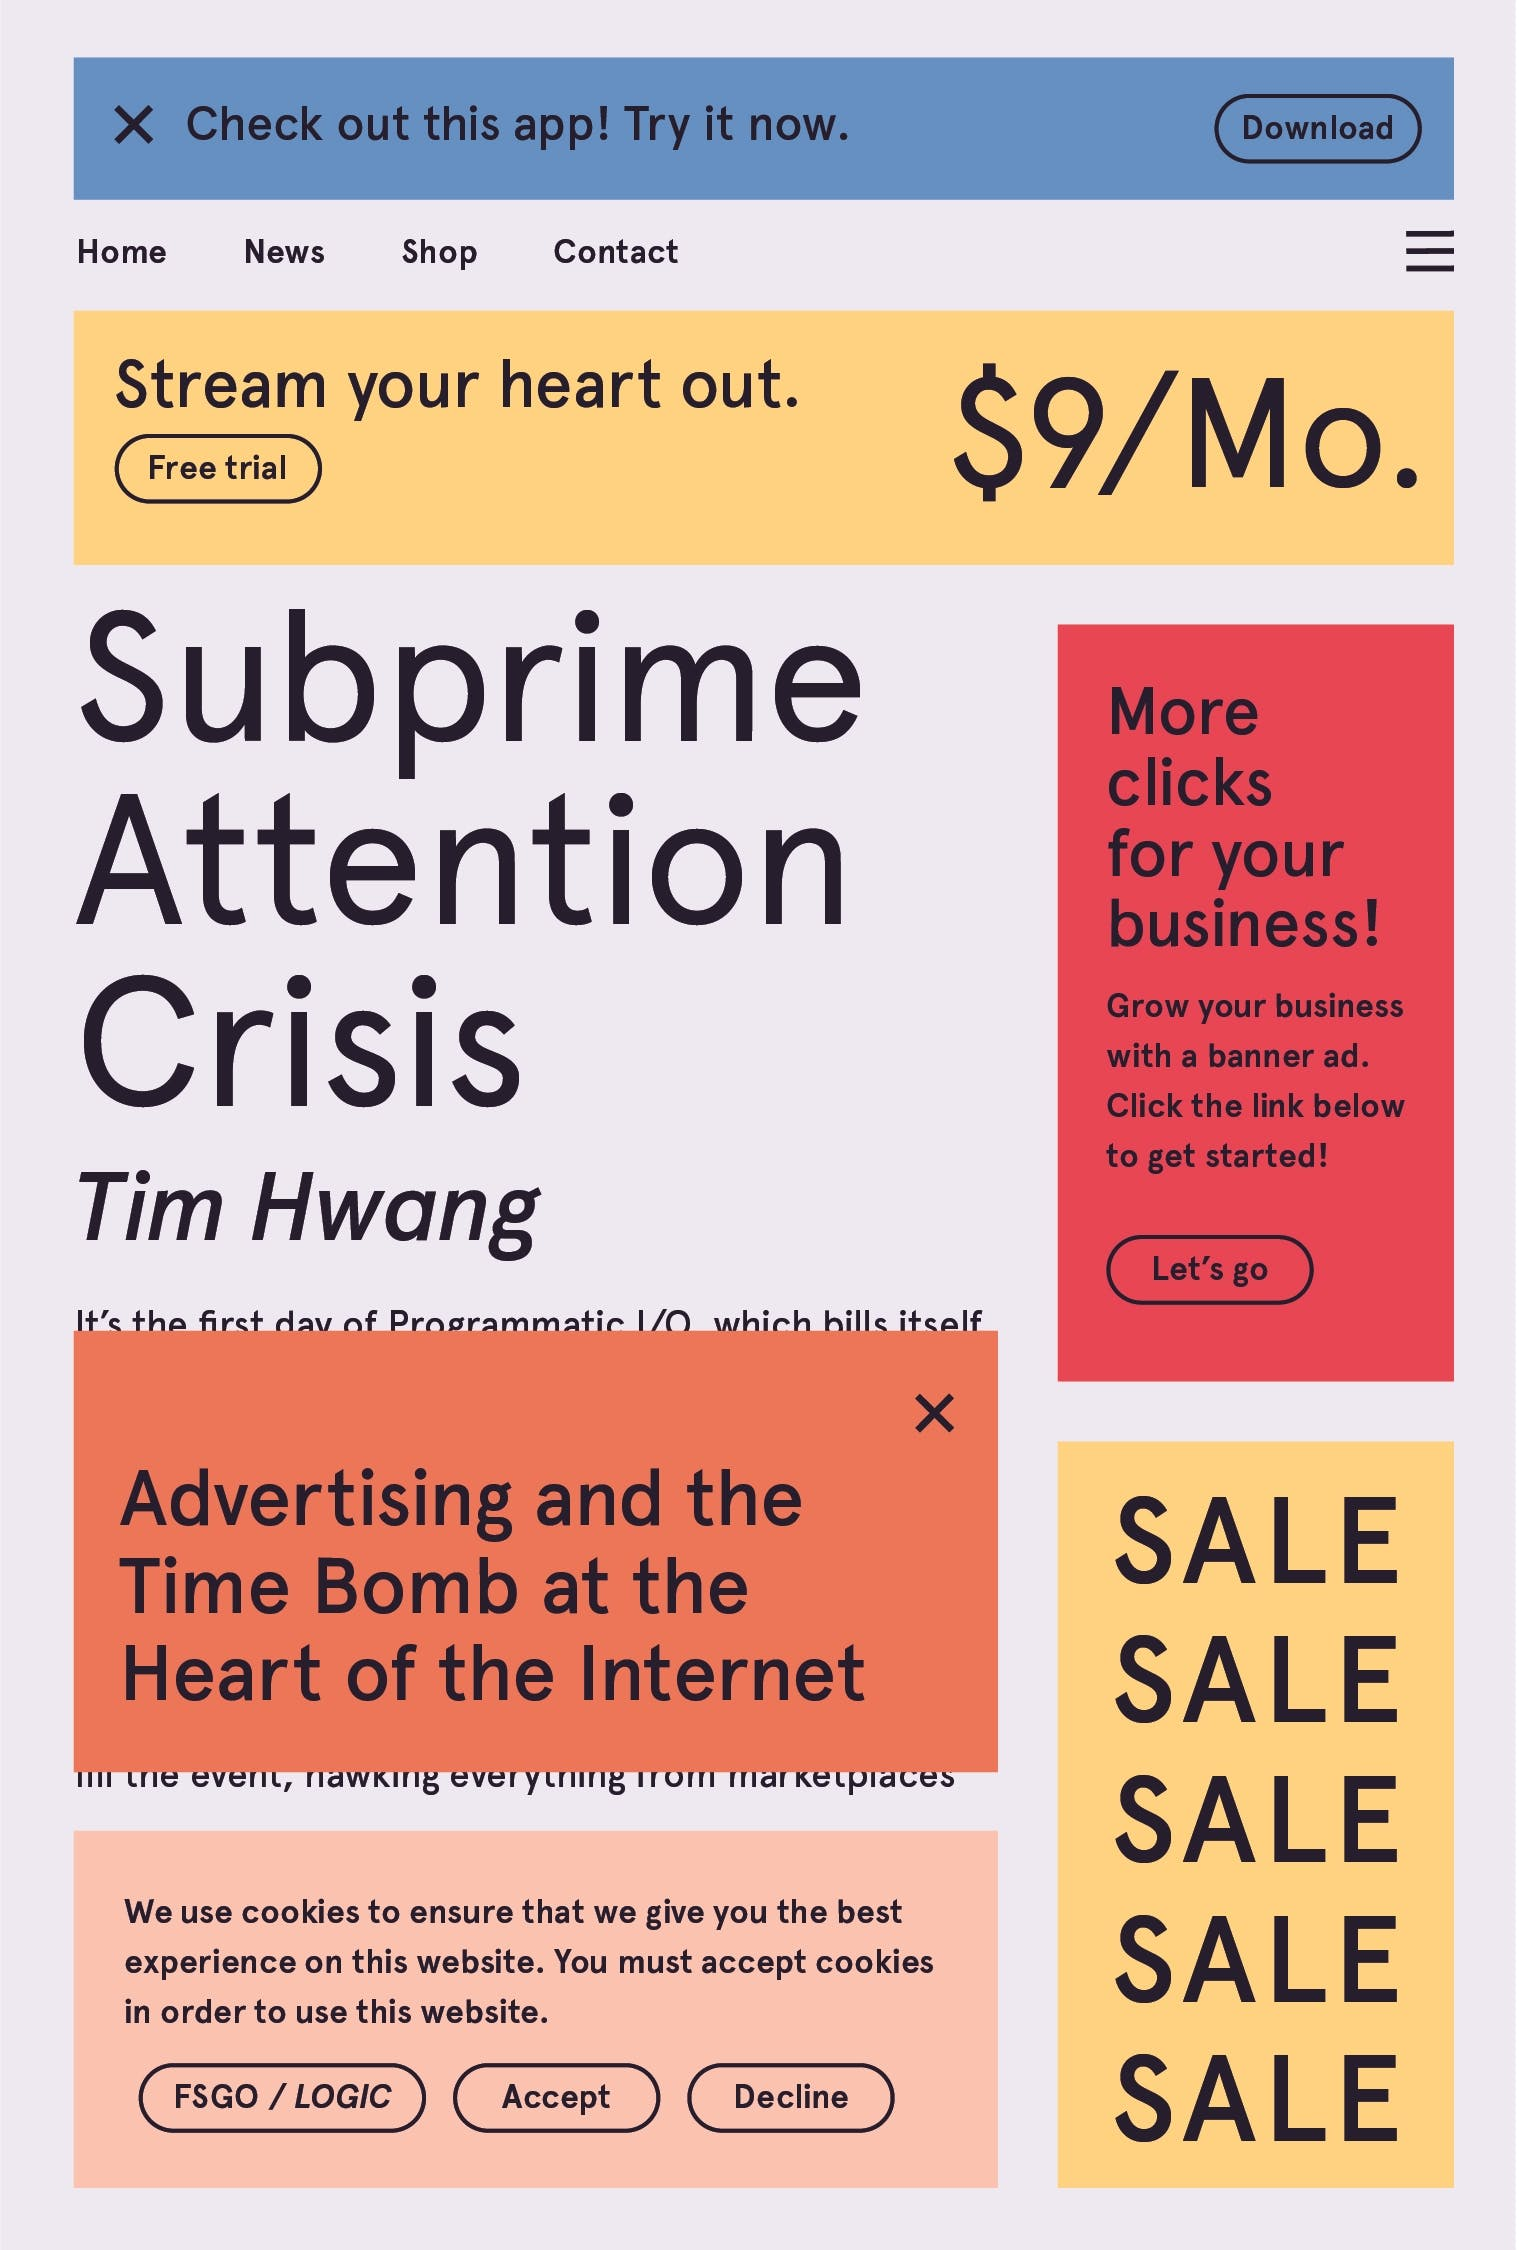 Image of Subprime Attention Crisis